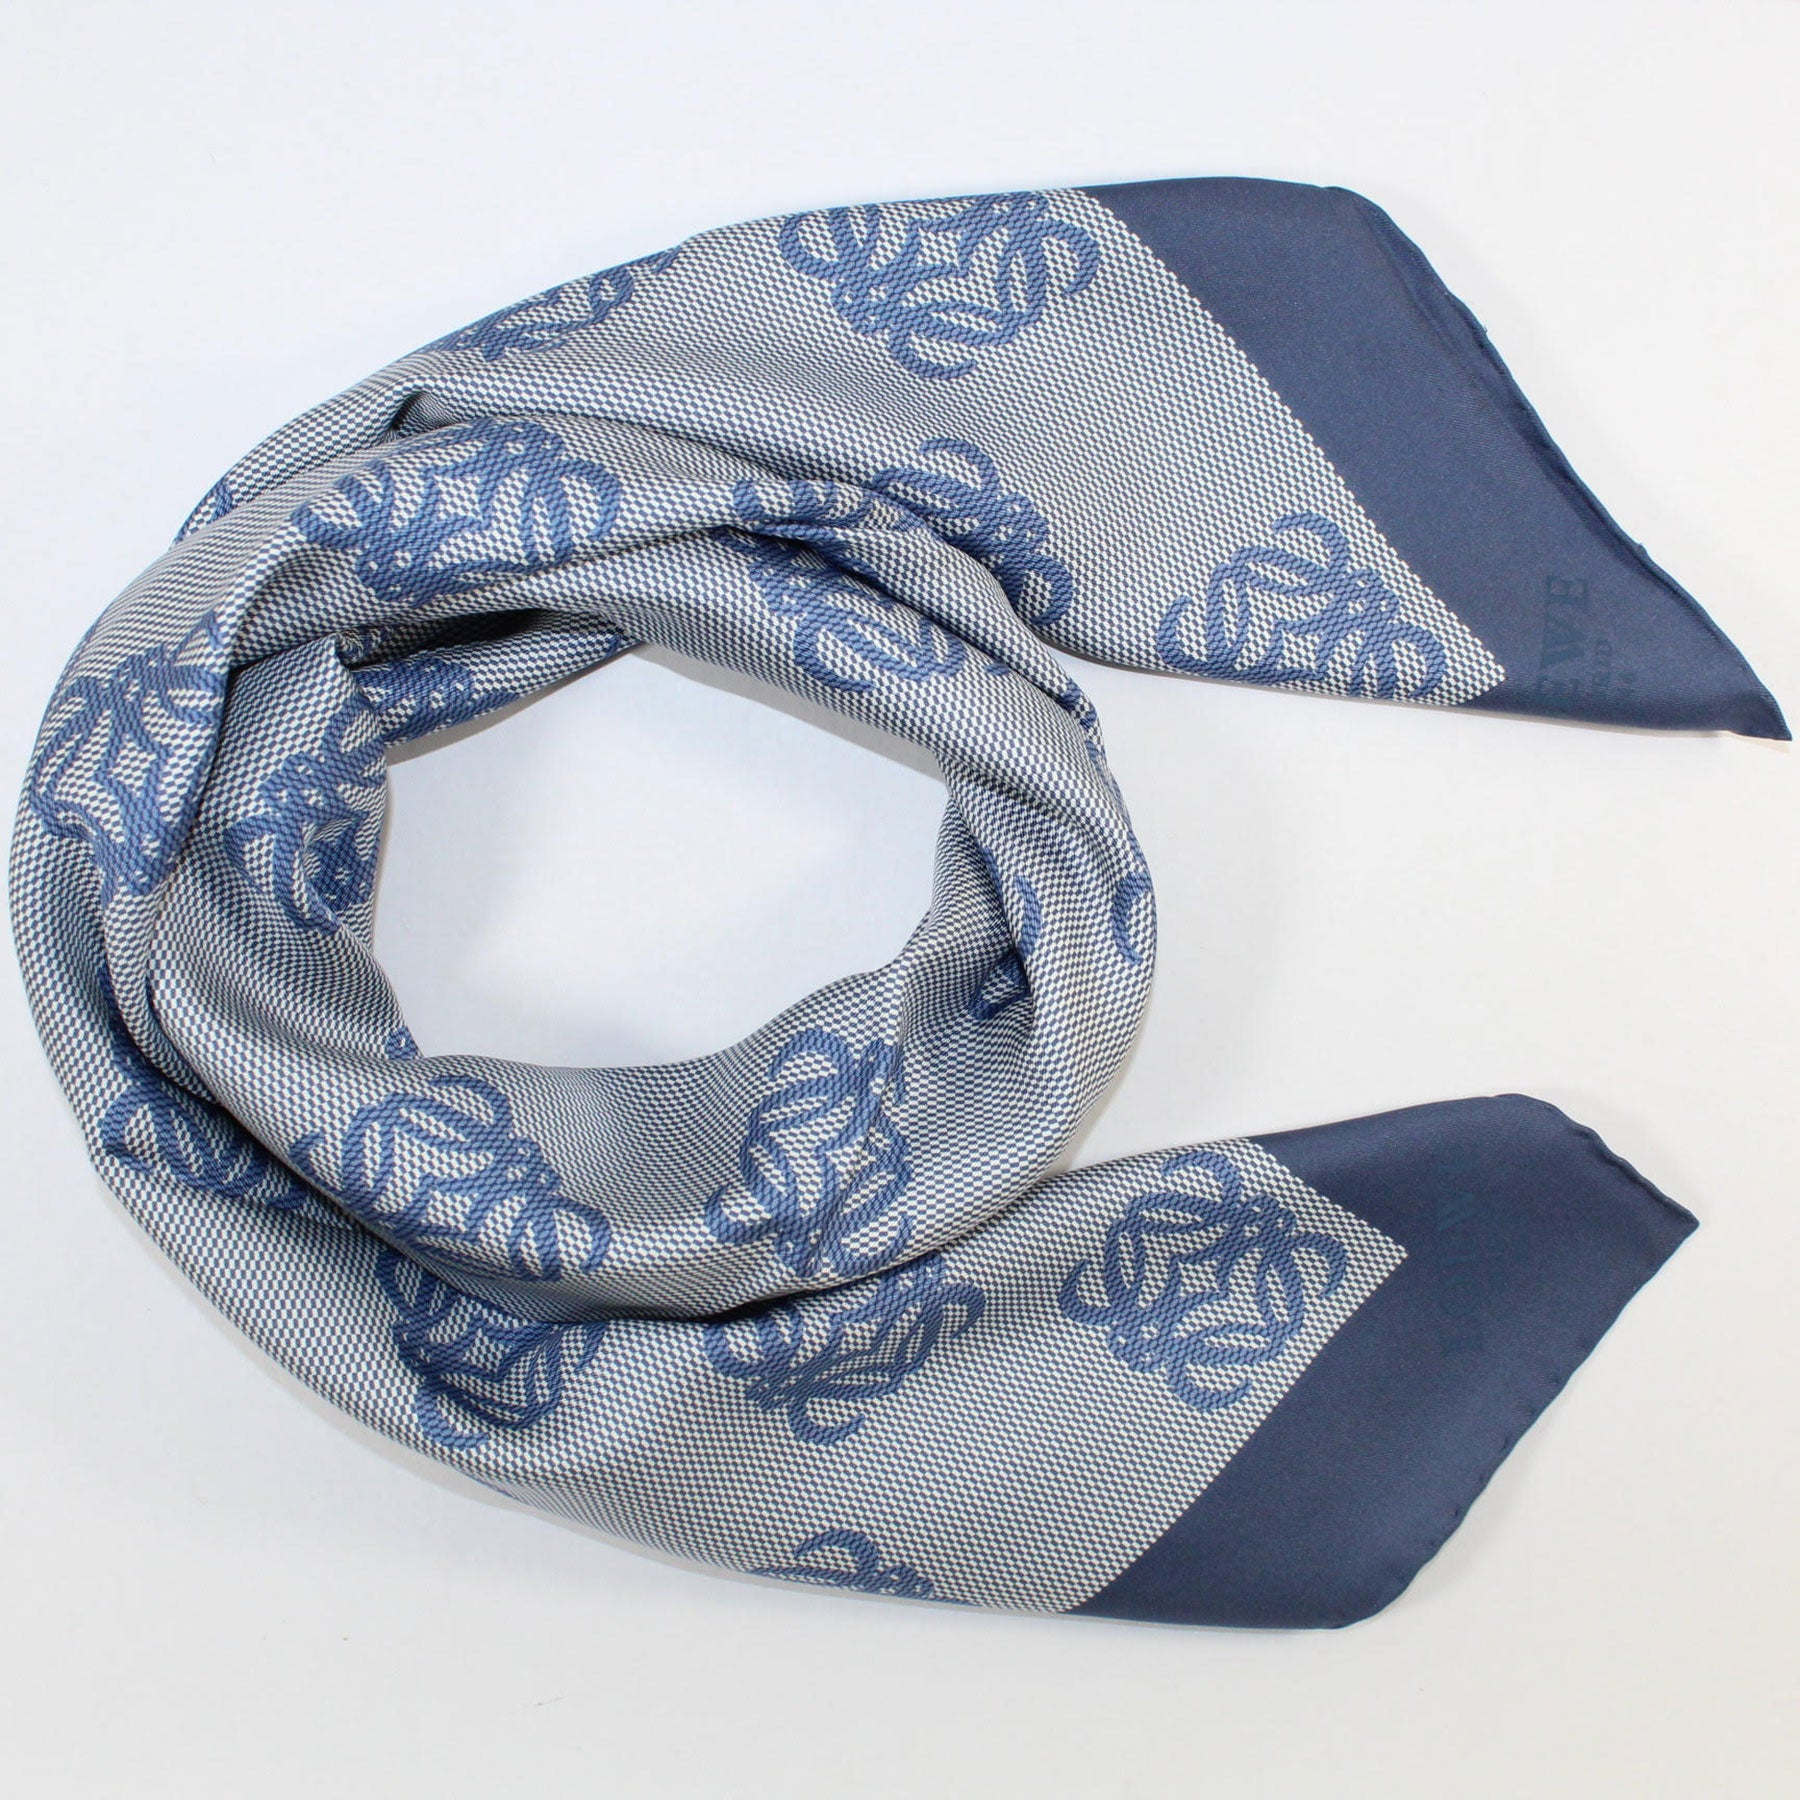 Loewe Silk Scarf Metallic Blue Anagram - Large Square Scarf